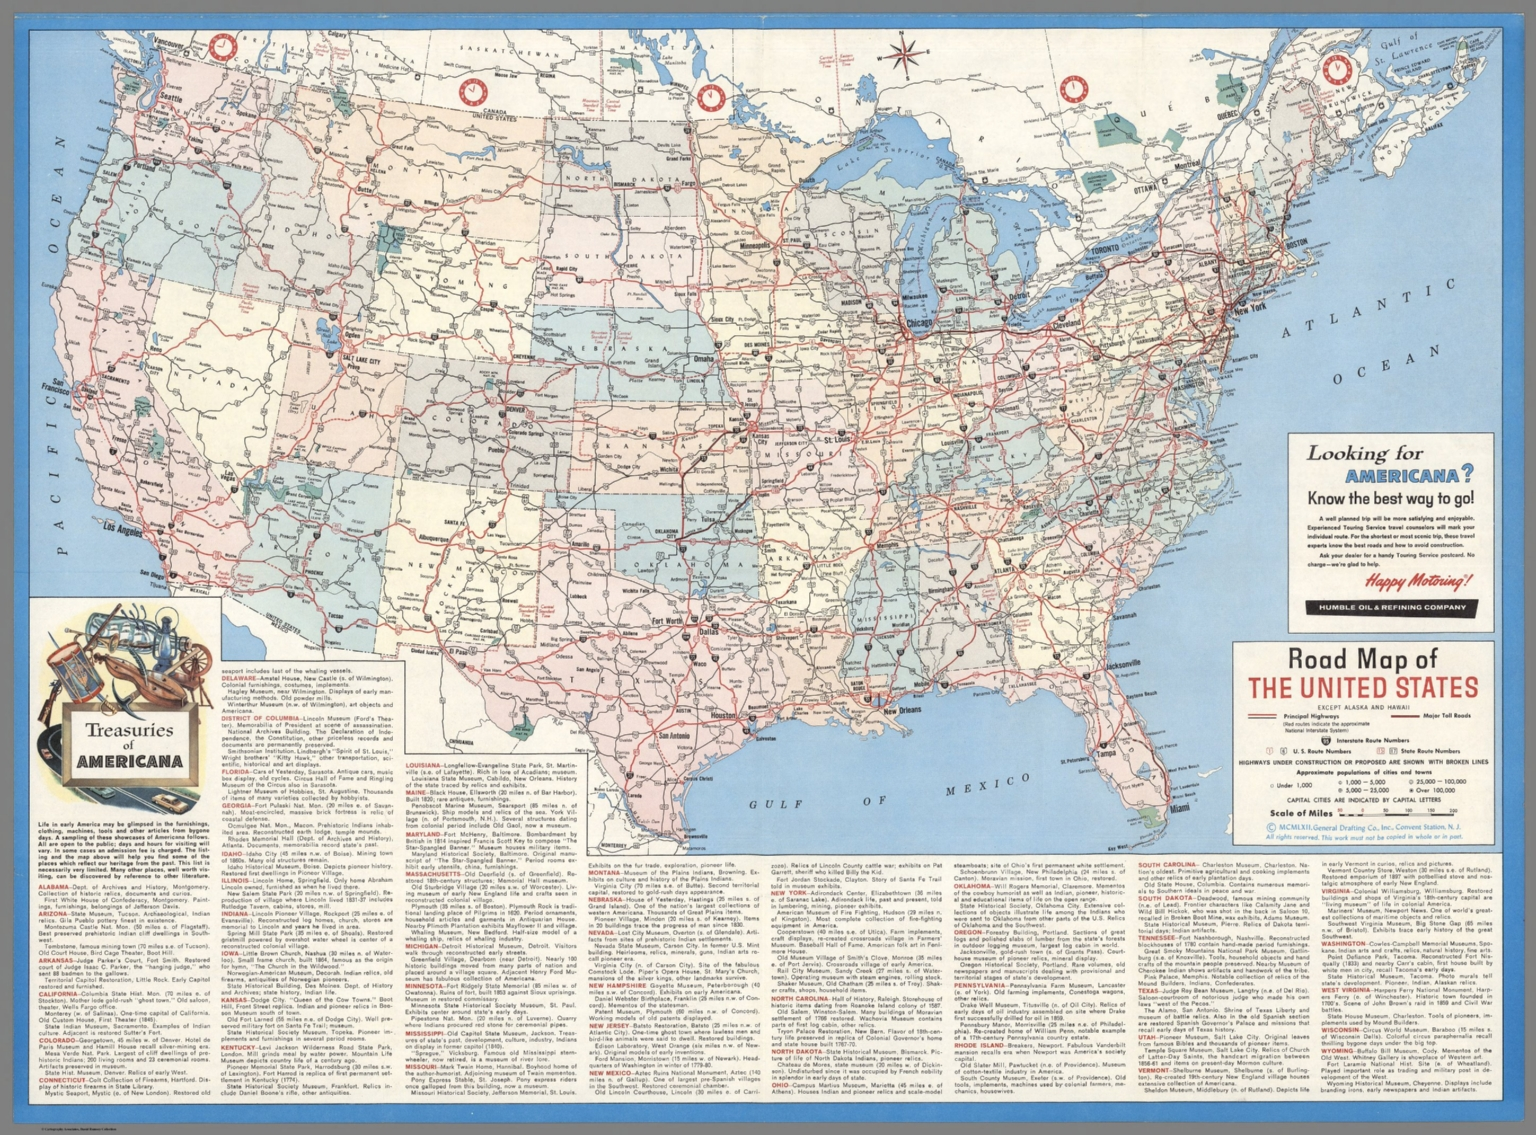 Road map of the United States  Except Alaska and Hawaii  MCMLXII     Road map of the United States  Except Alaska and Hawaii  MCMLXII  1962